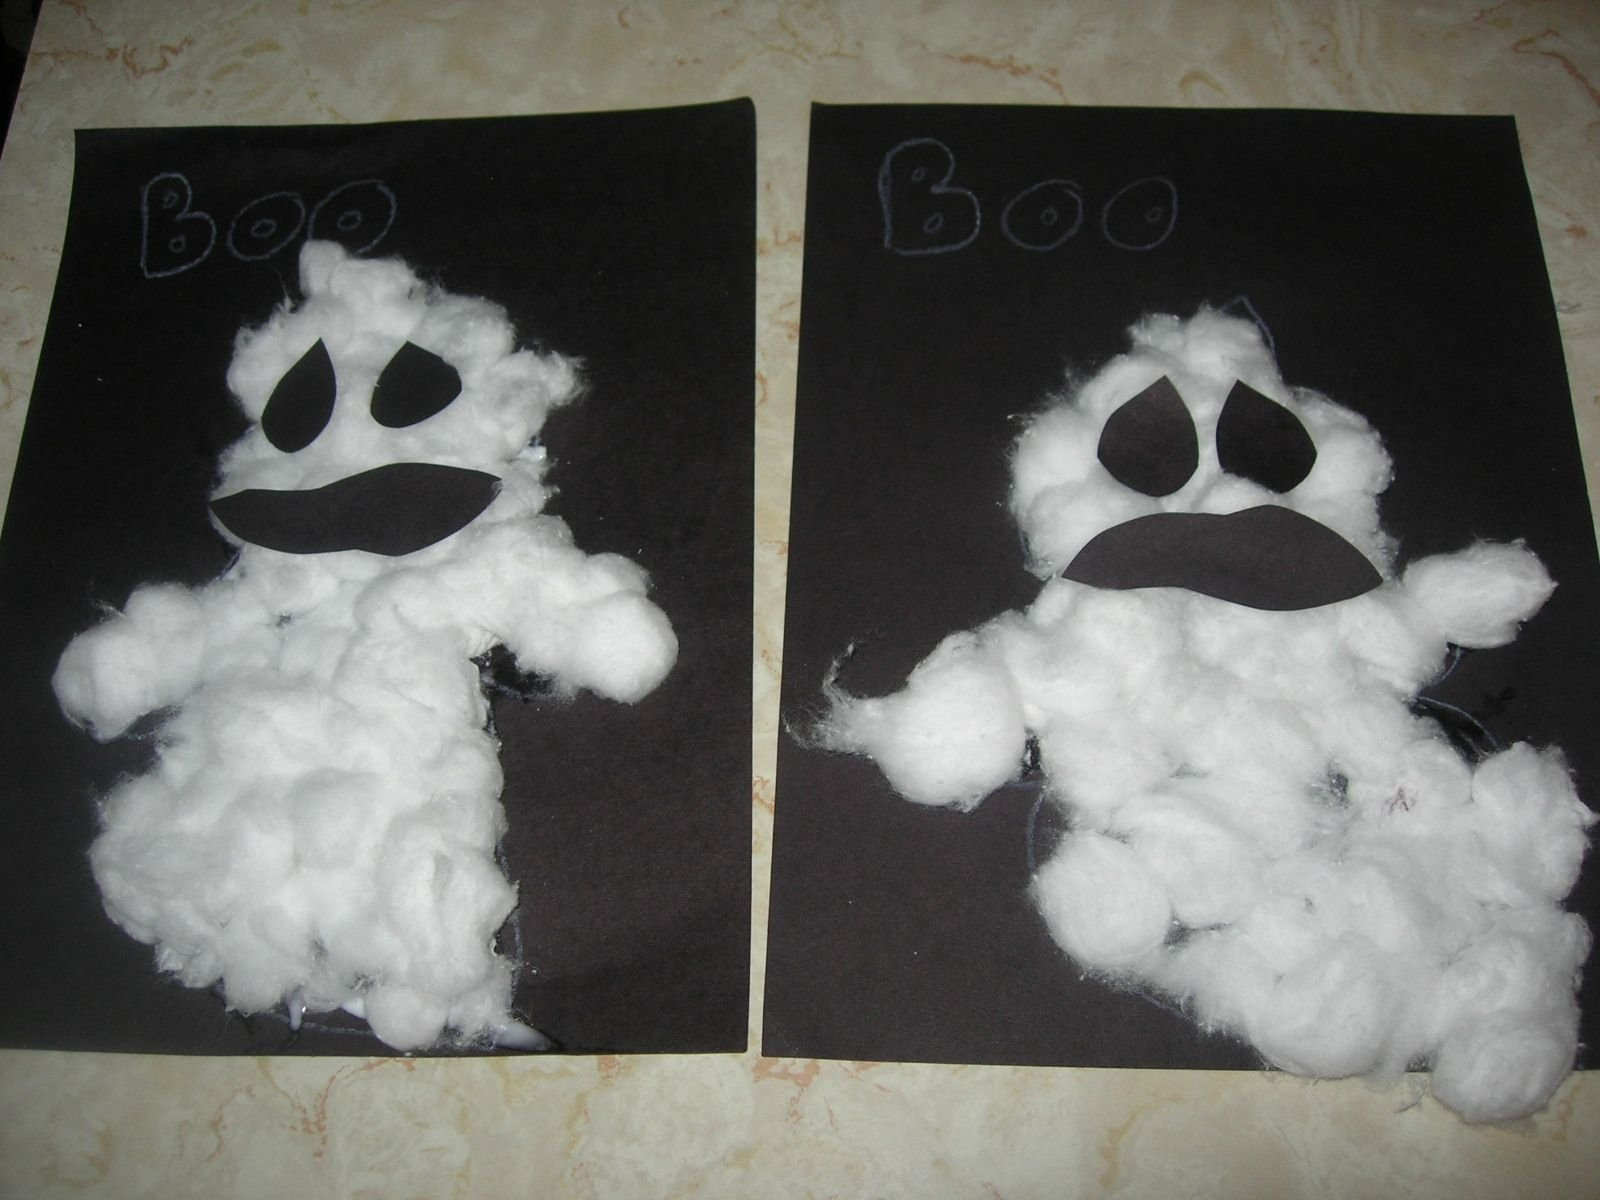 10 Stylish Halloween Craft Ideas For Toddlers halloween crafts for preschoolers classified mom halloween art 1 2020